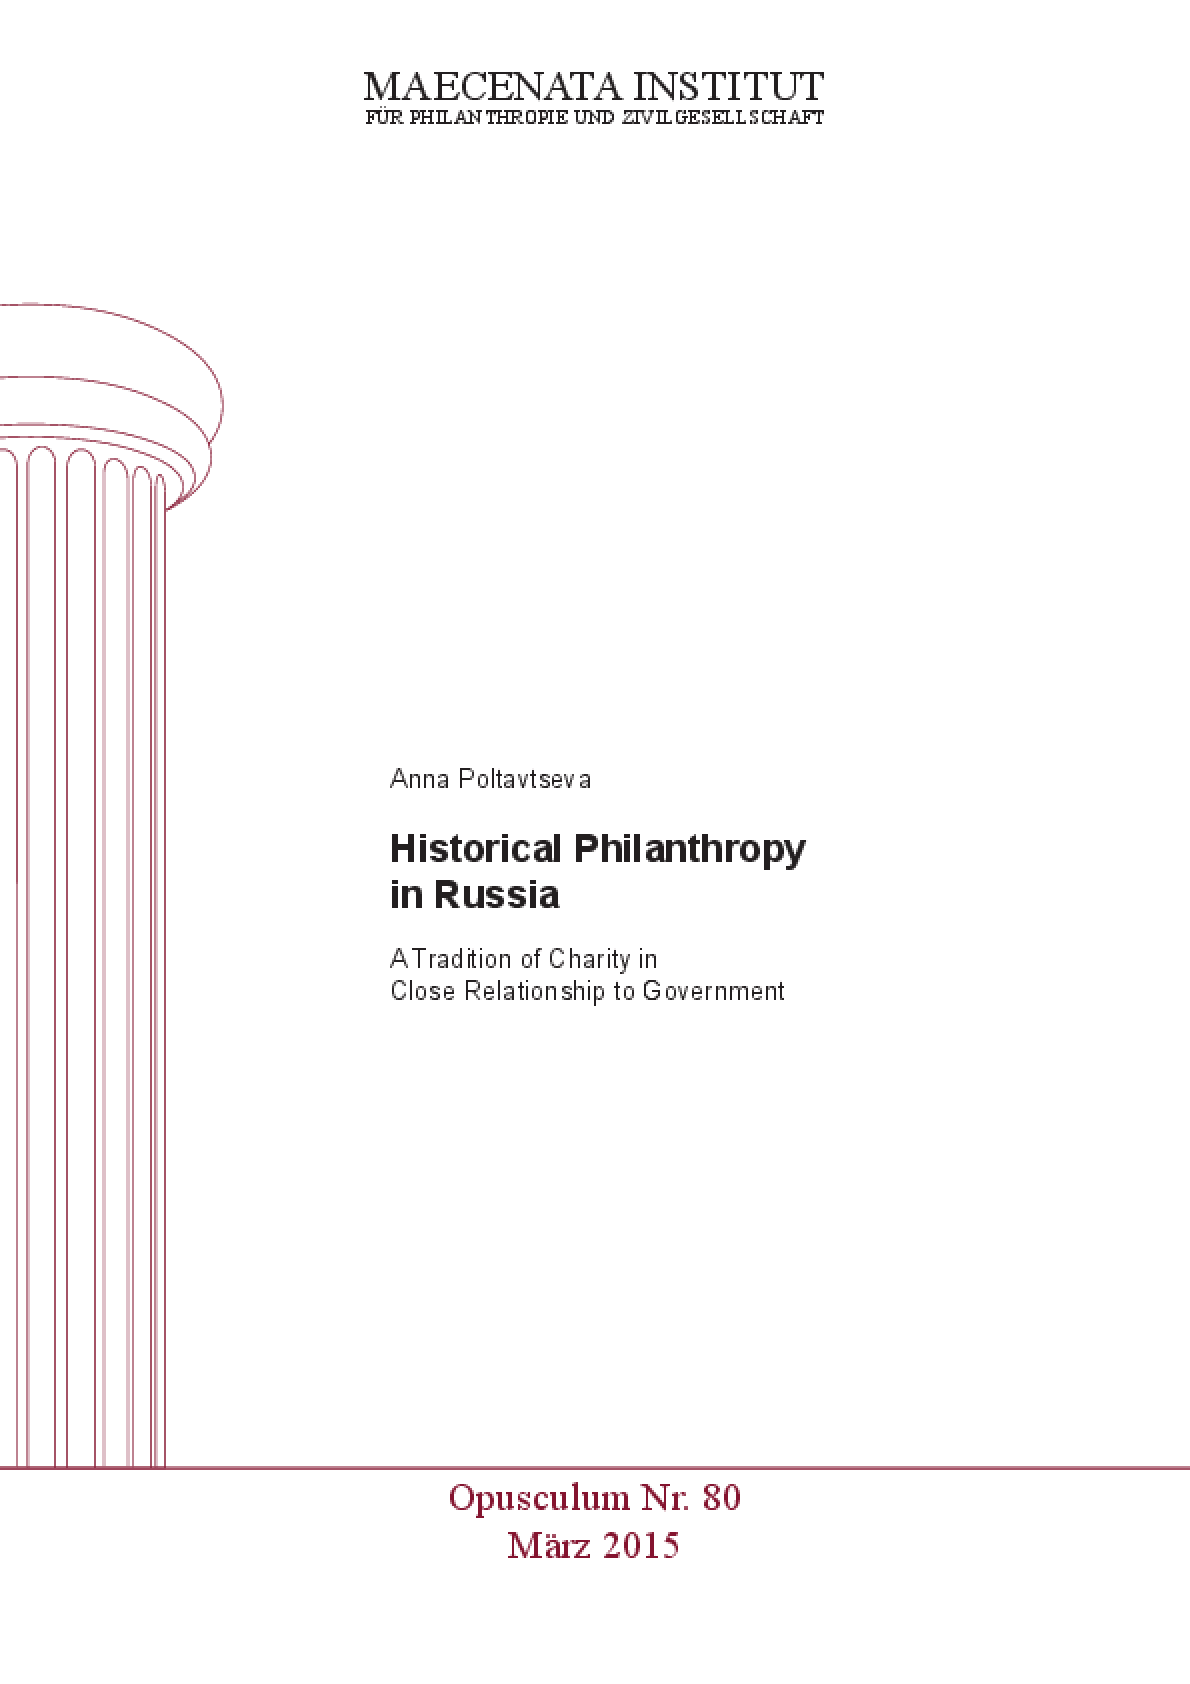 Historical Philanthropy in Russia : A Tradition of Charity in Close Relationship to Government